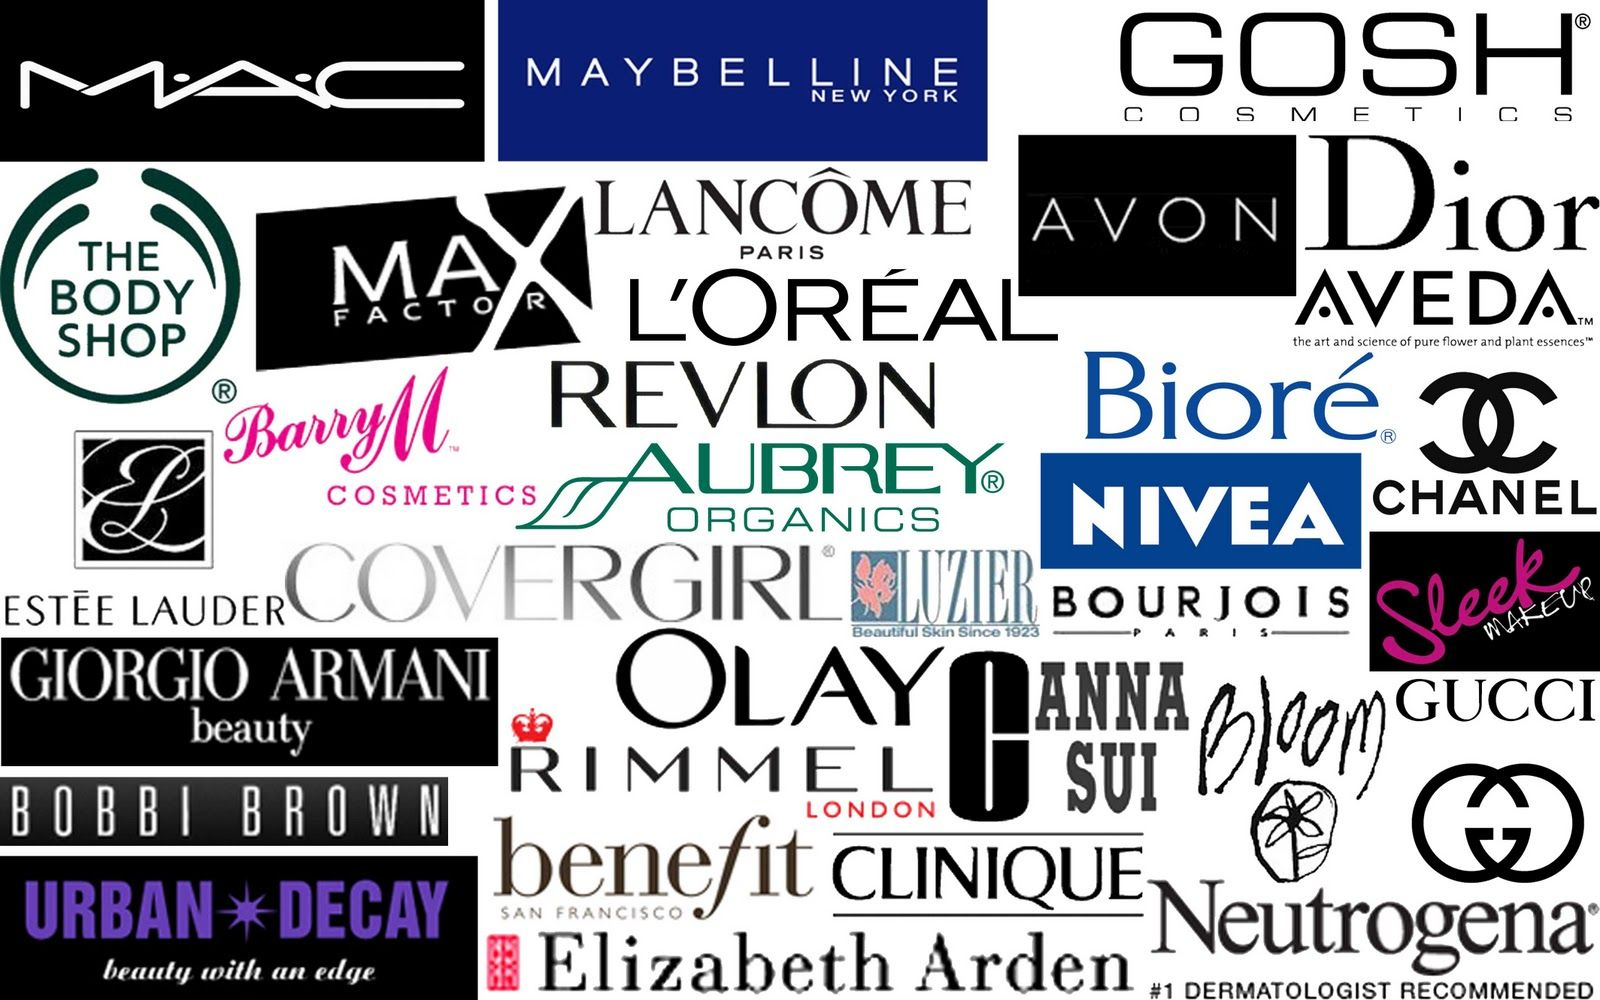 cosmeticlogos3.jpg (1600×1000) Cosmetics wholesale